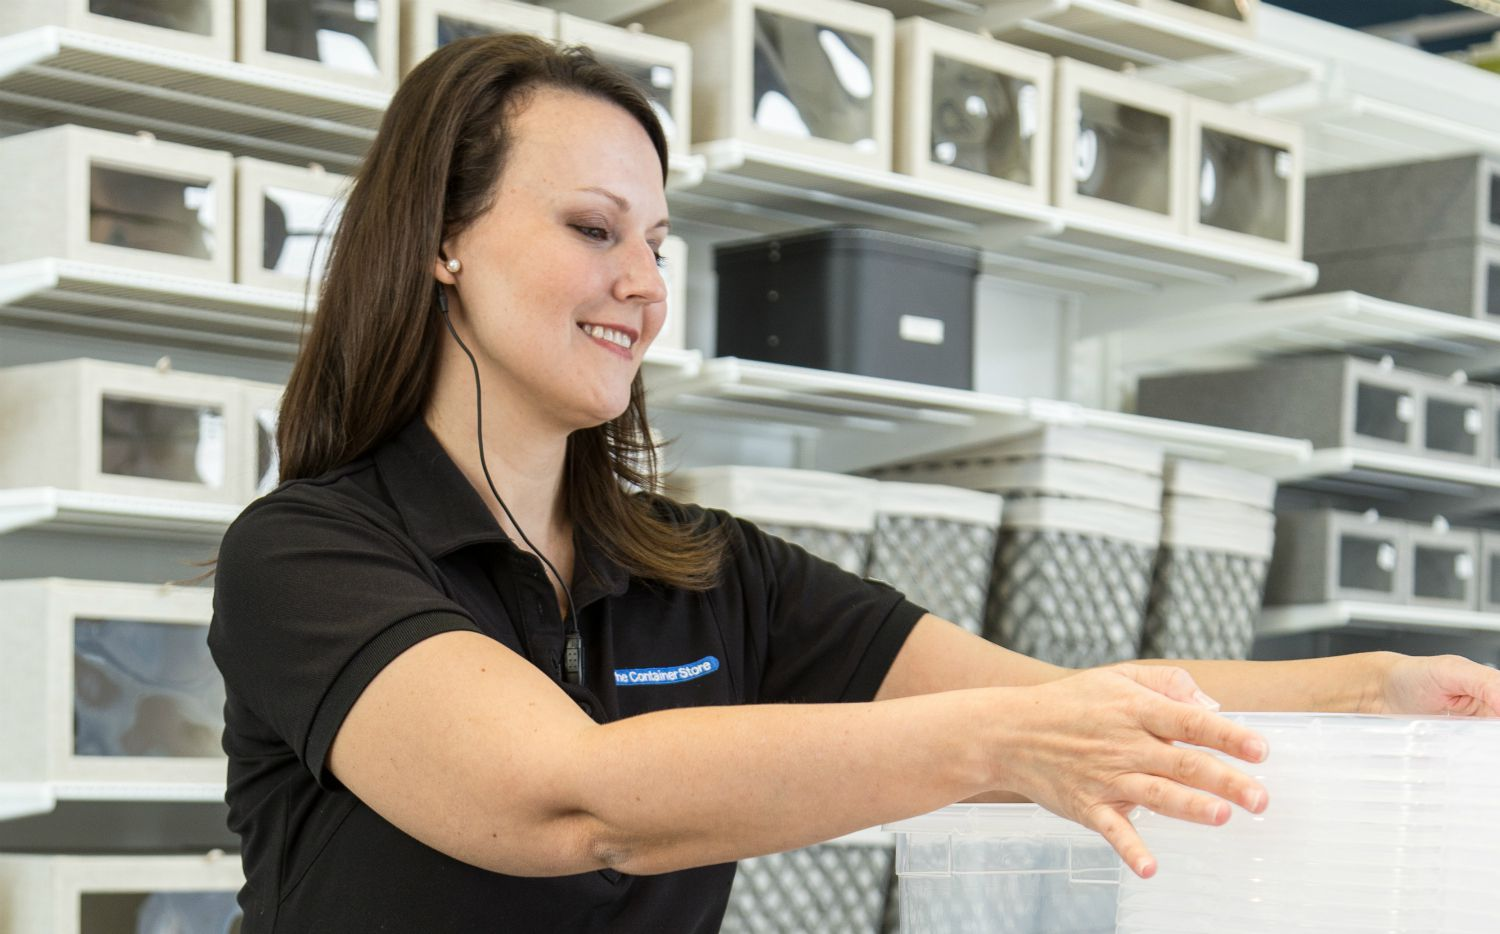 Employees at The Container Store use voice-activated wearable devices made by Theatro, a Richardson-based company.  Using the devices, employees can search for items and get help from co-workers most familiar with various categories without leaving the customer.